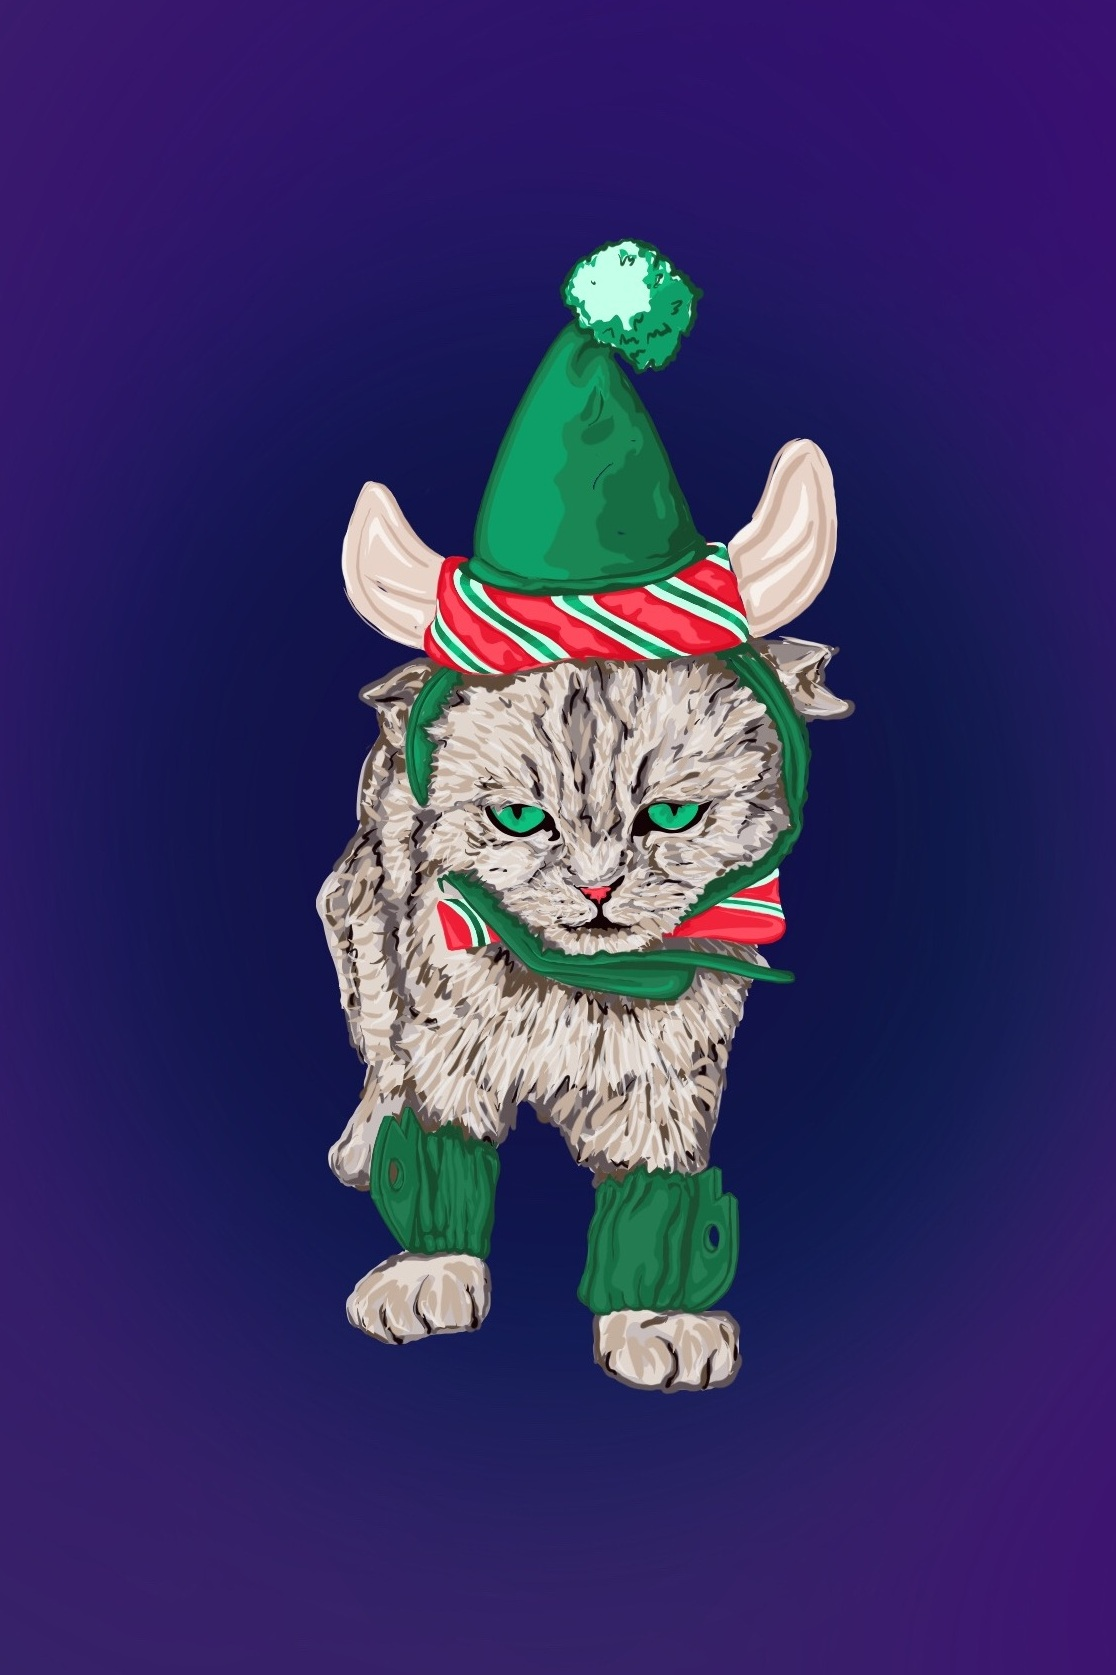 Dreadholidays_cat.jpg